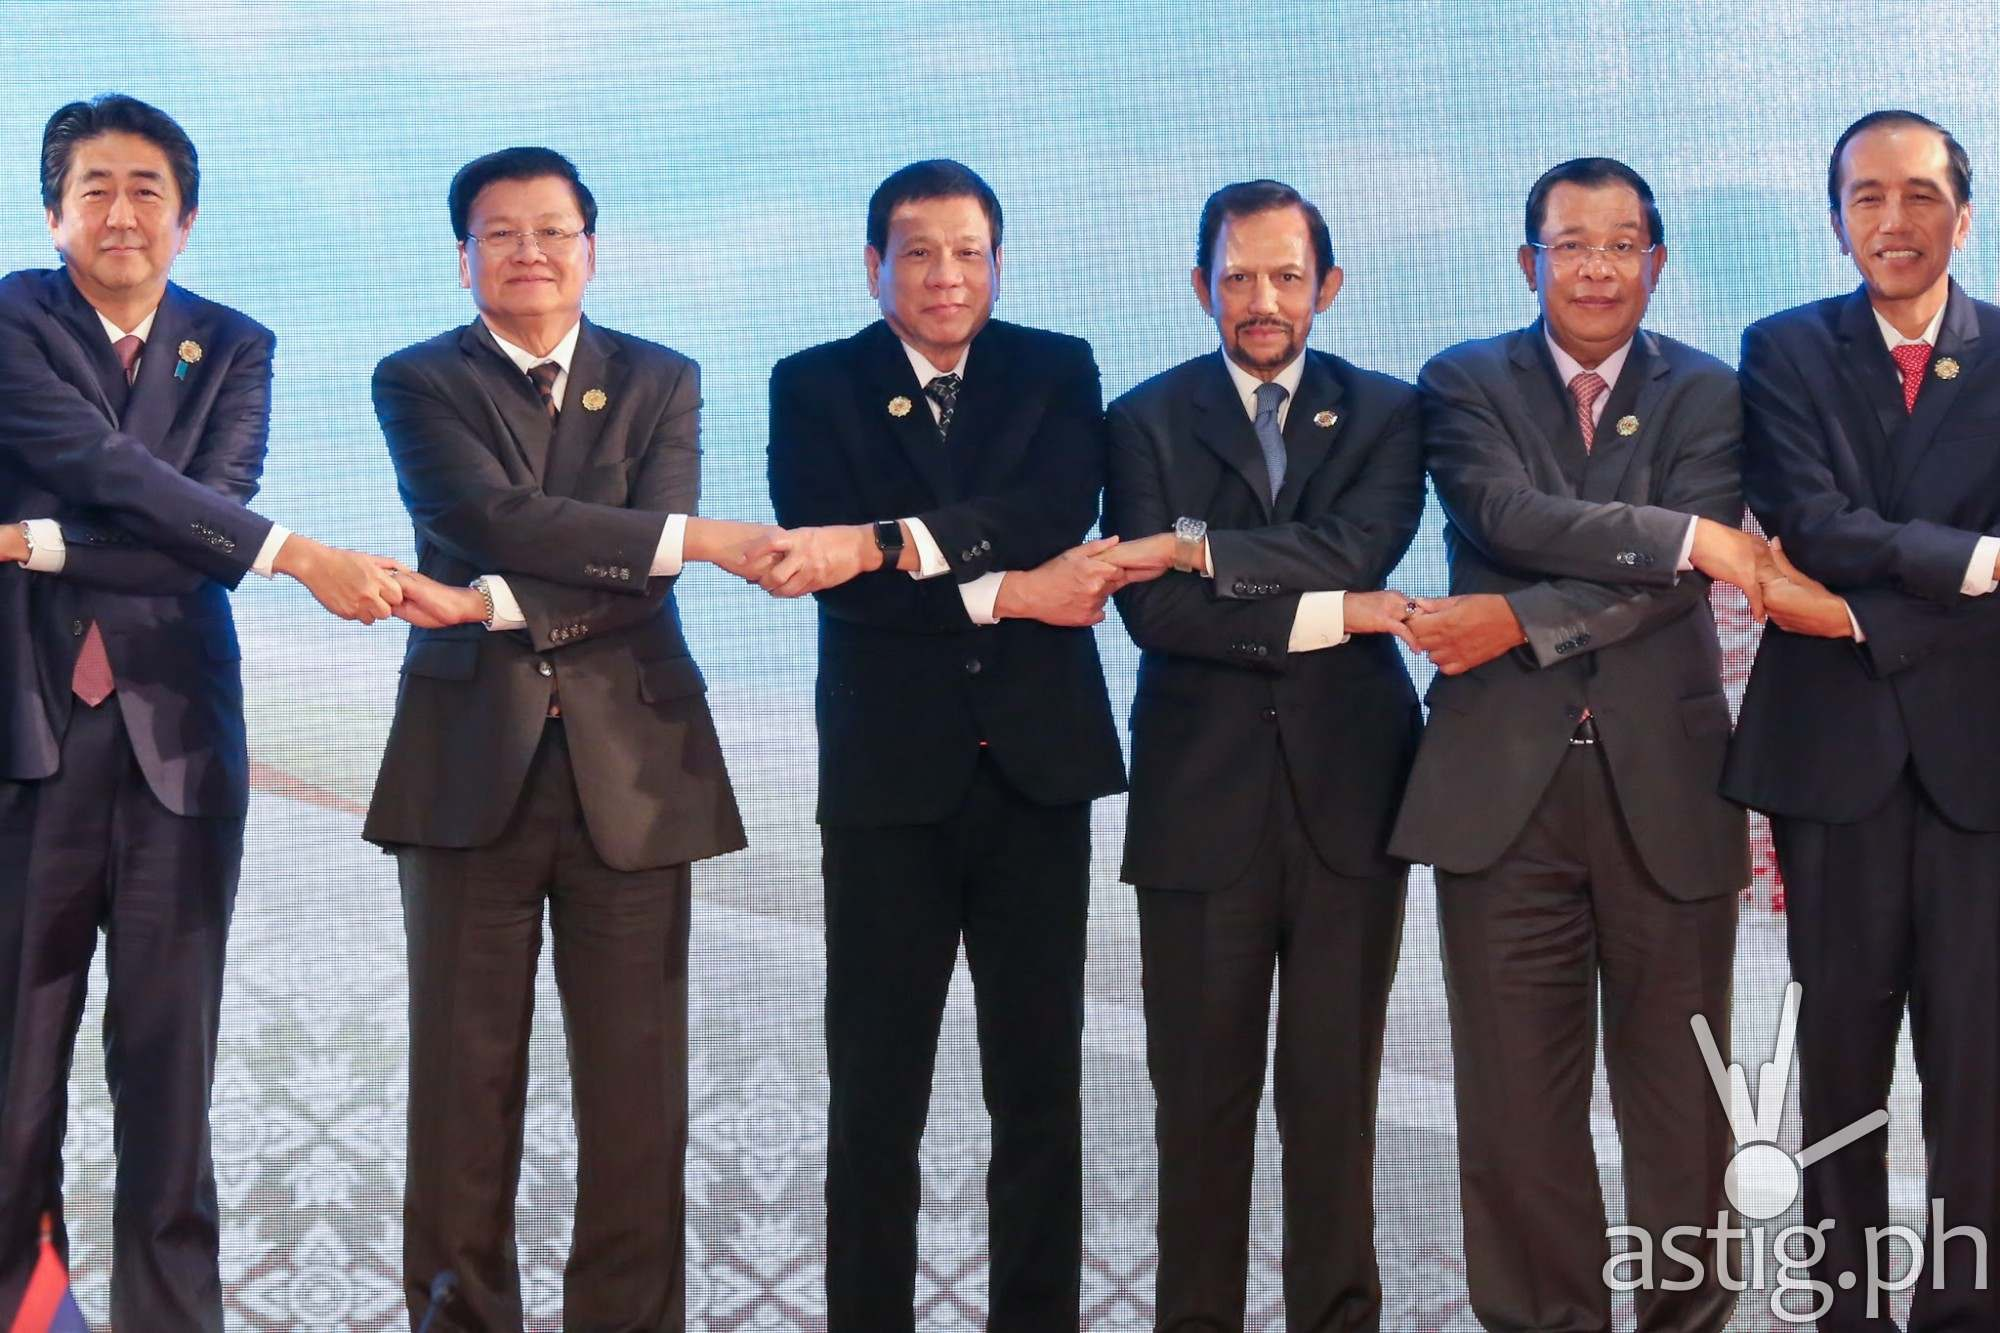 President Rodrigo R. Duterte joins other ASEAN heads of states, holding hands as a symbol of unity, during the second day of the ASEAN Summit at the National Convention Center in Vientiane, Laos on September 7. (KING RODRIGUEZ/PPD)